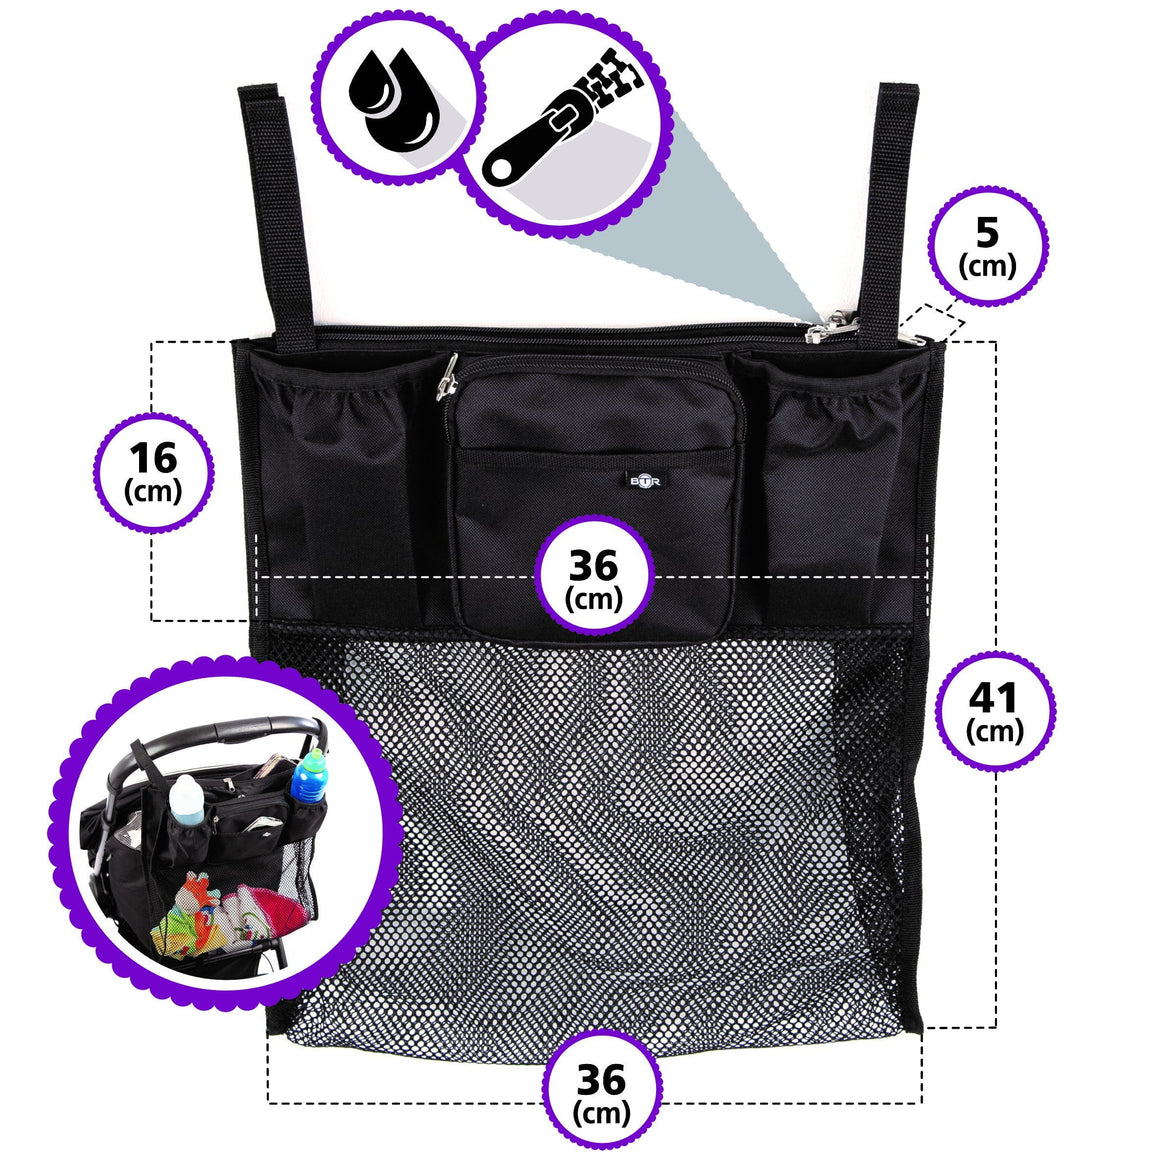 BTR Slimline Pram Buggy Organiser Storage with Shopping Net